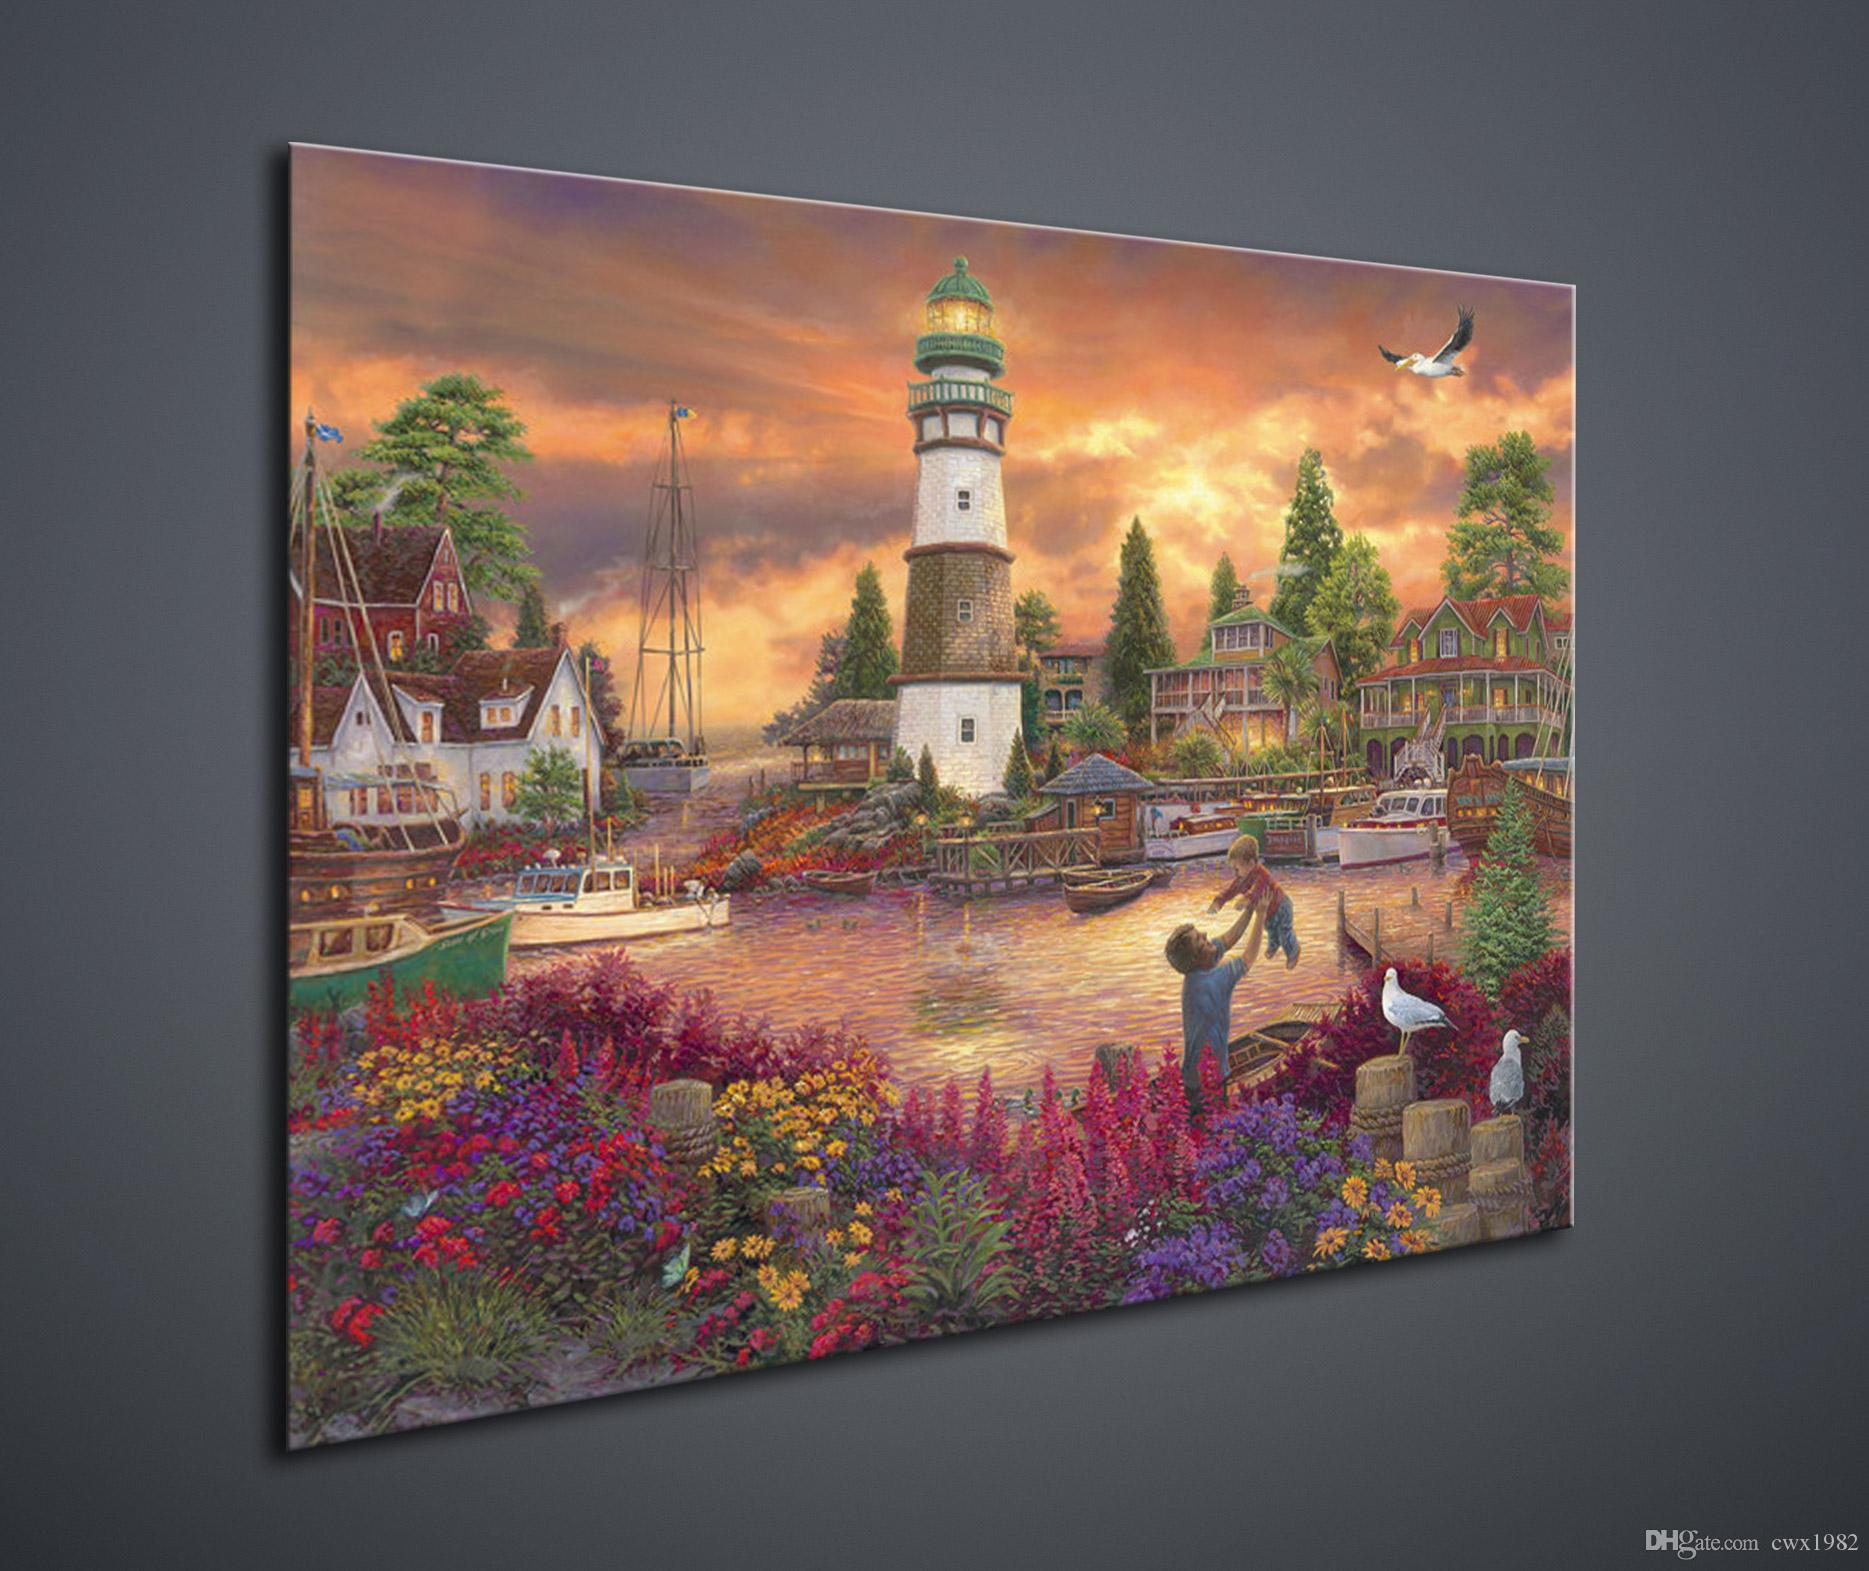 Hd Inkjet Scenery High Definition Home Decoration Canvas - Painting definition